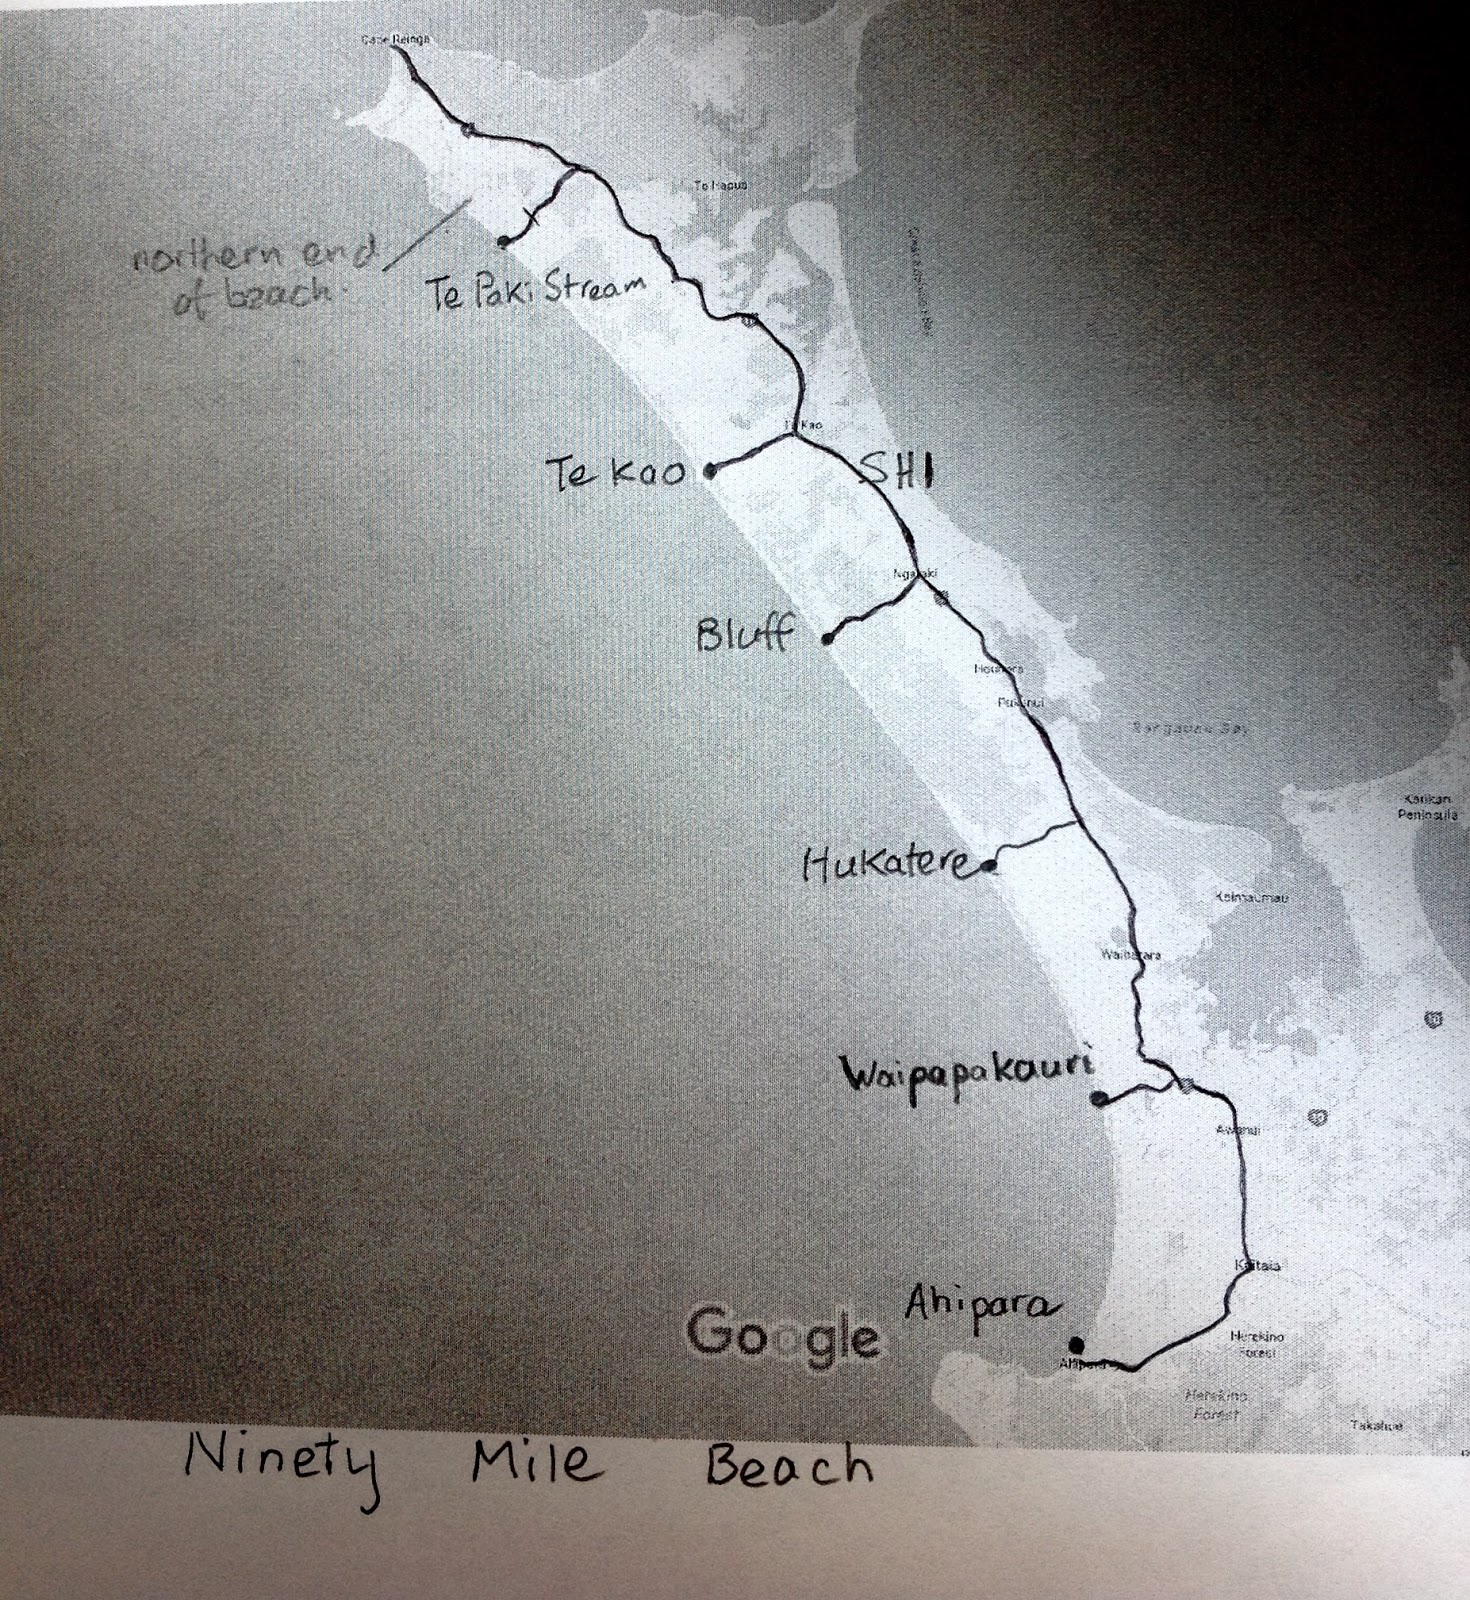 Cycling ninety mile beach northland cycle touring in new zealand the high tide island can be reached from the beach at all times except full tide but on the ocean side is for ever exposed to the full force of the waves nvjuhfo Gallery